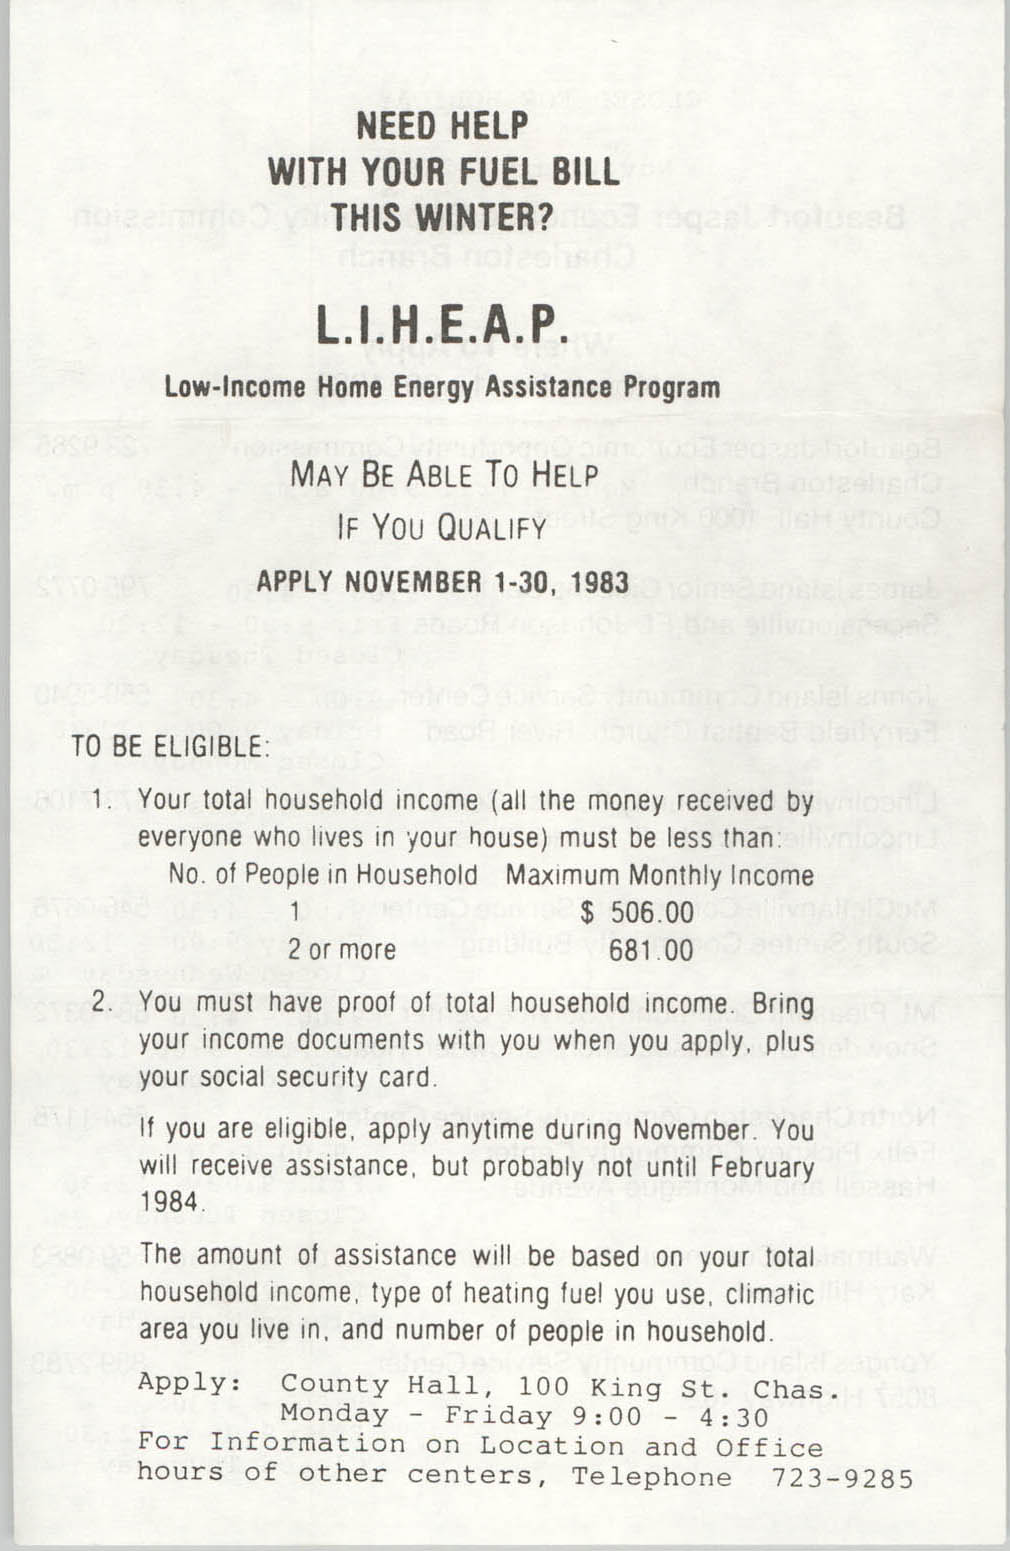 Low-Income Home Energy Assistance Program Pamphlet